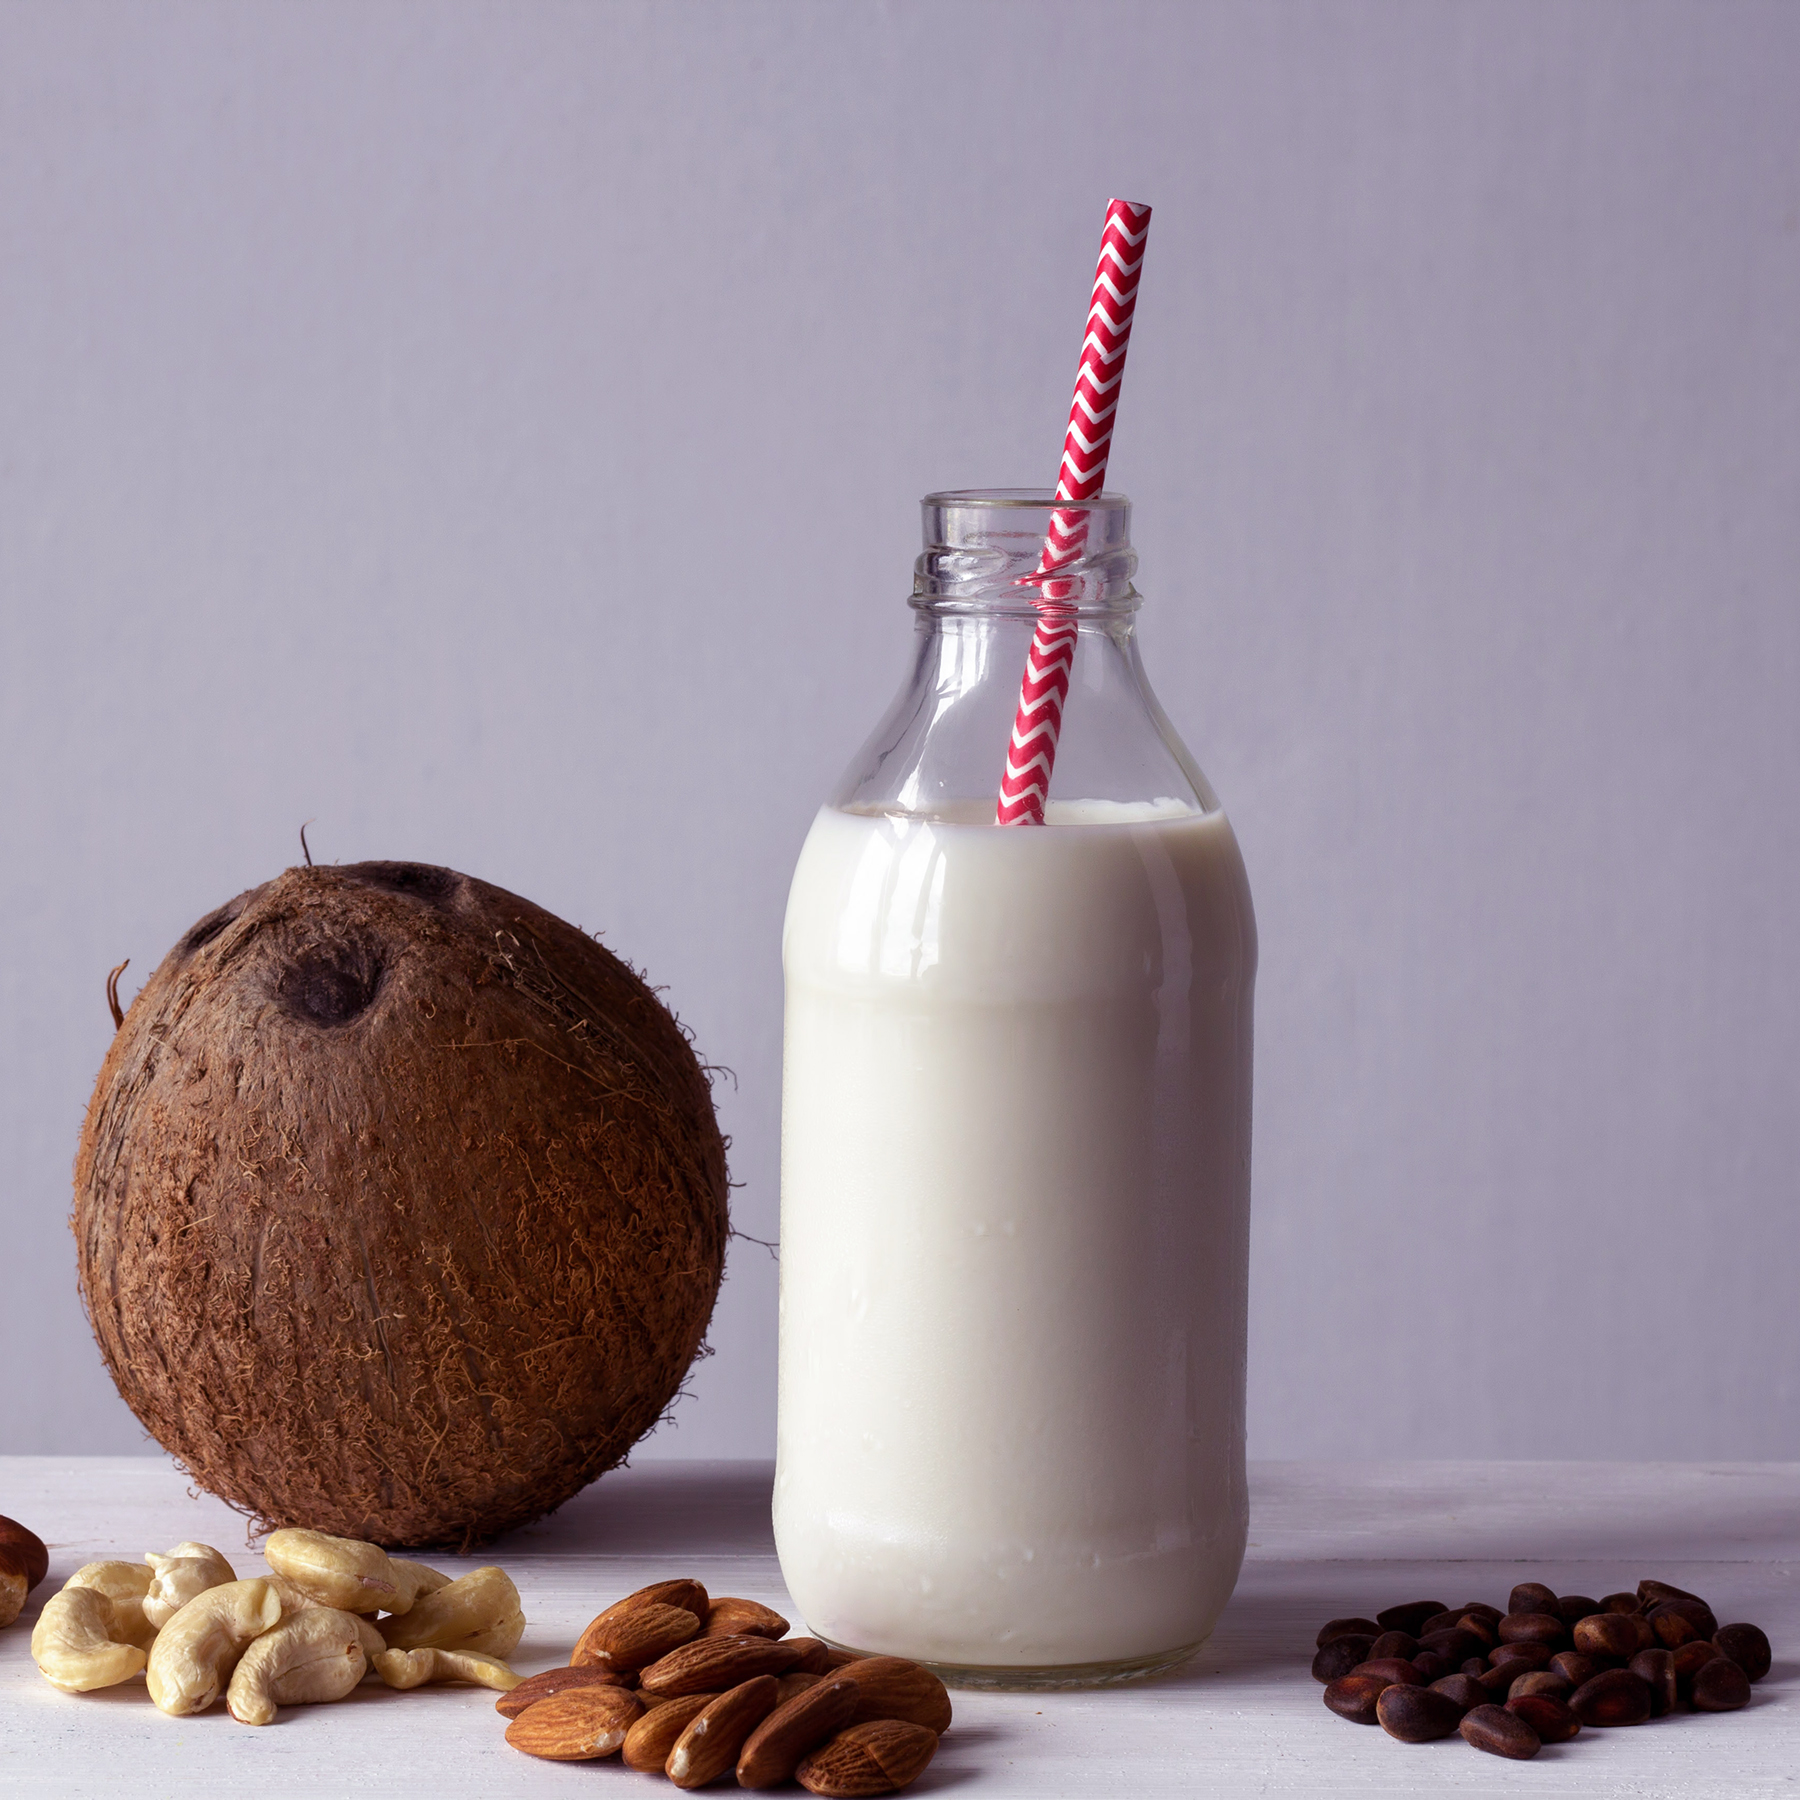 Nut Milk Recipes: Make Your Own Nut Milks!